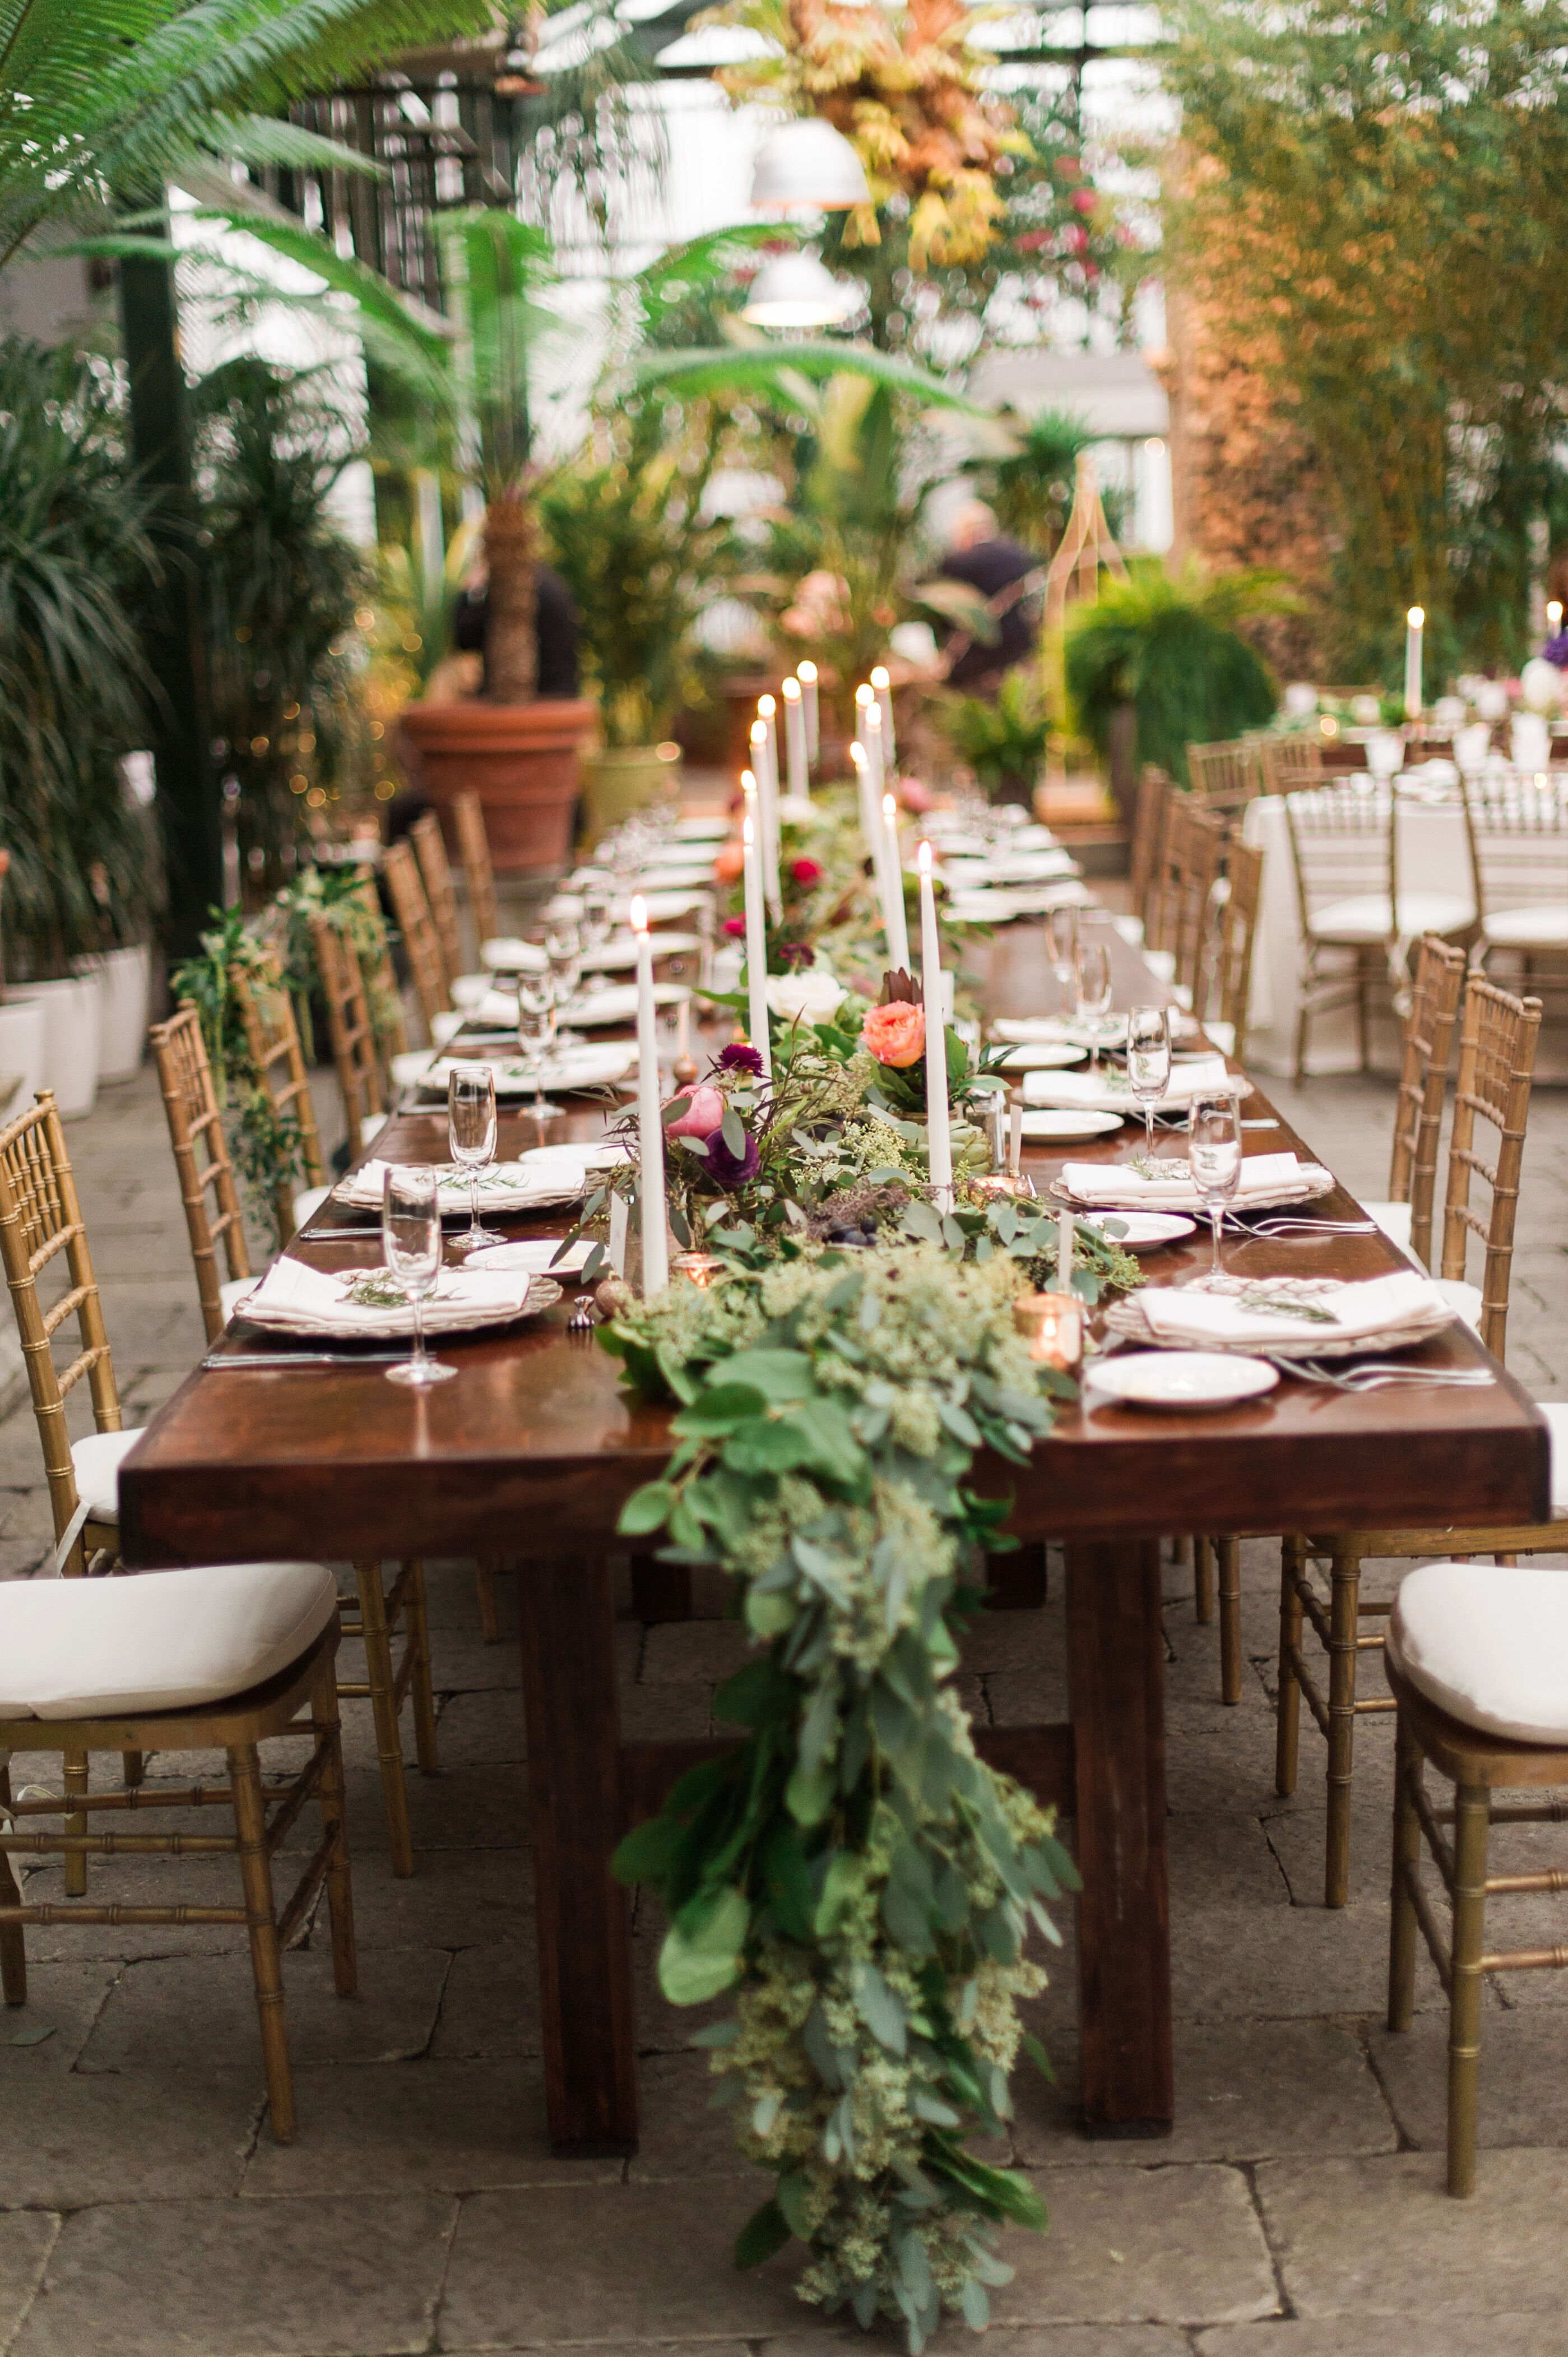 Farm Tables With Green Garland Table Runner